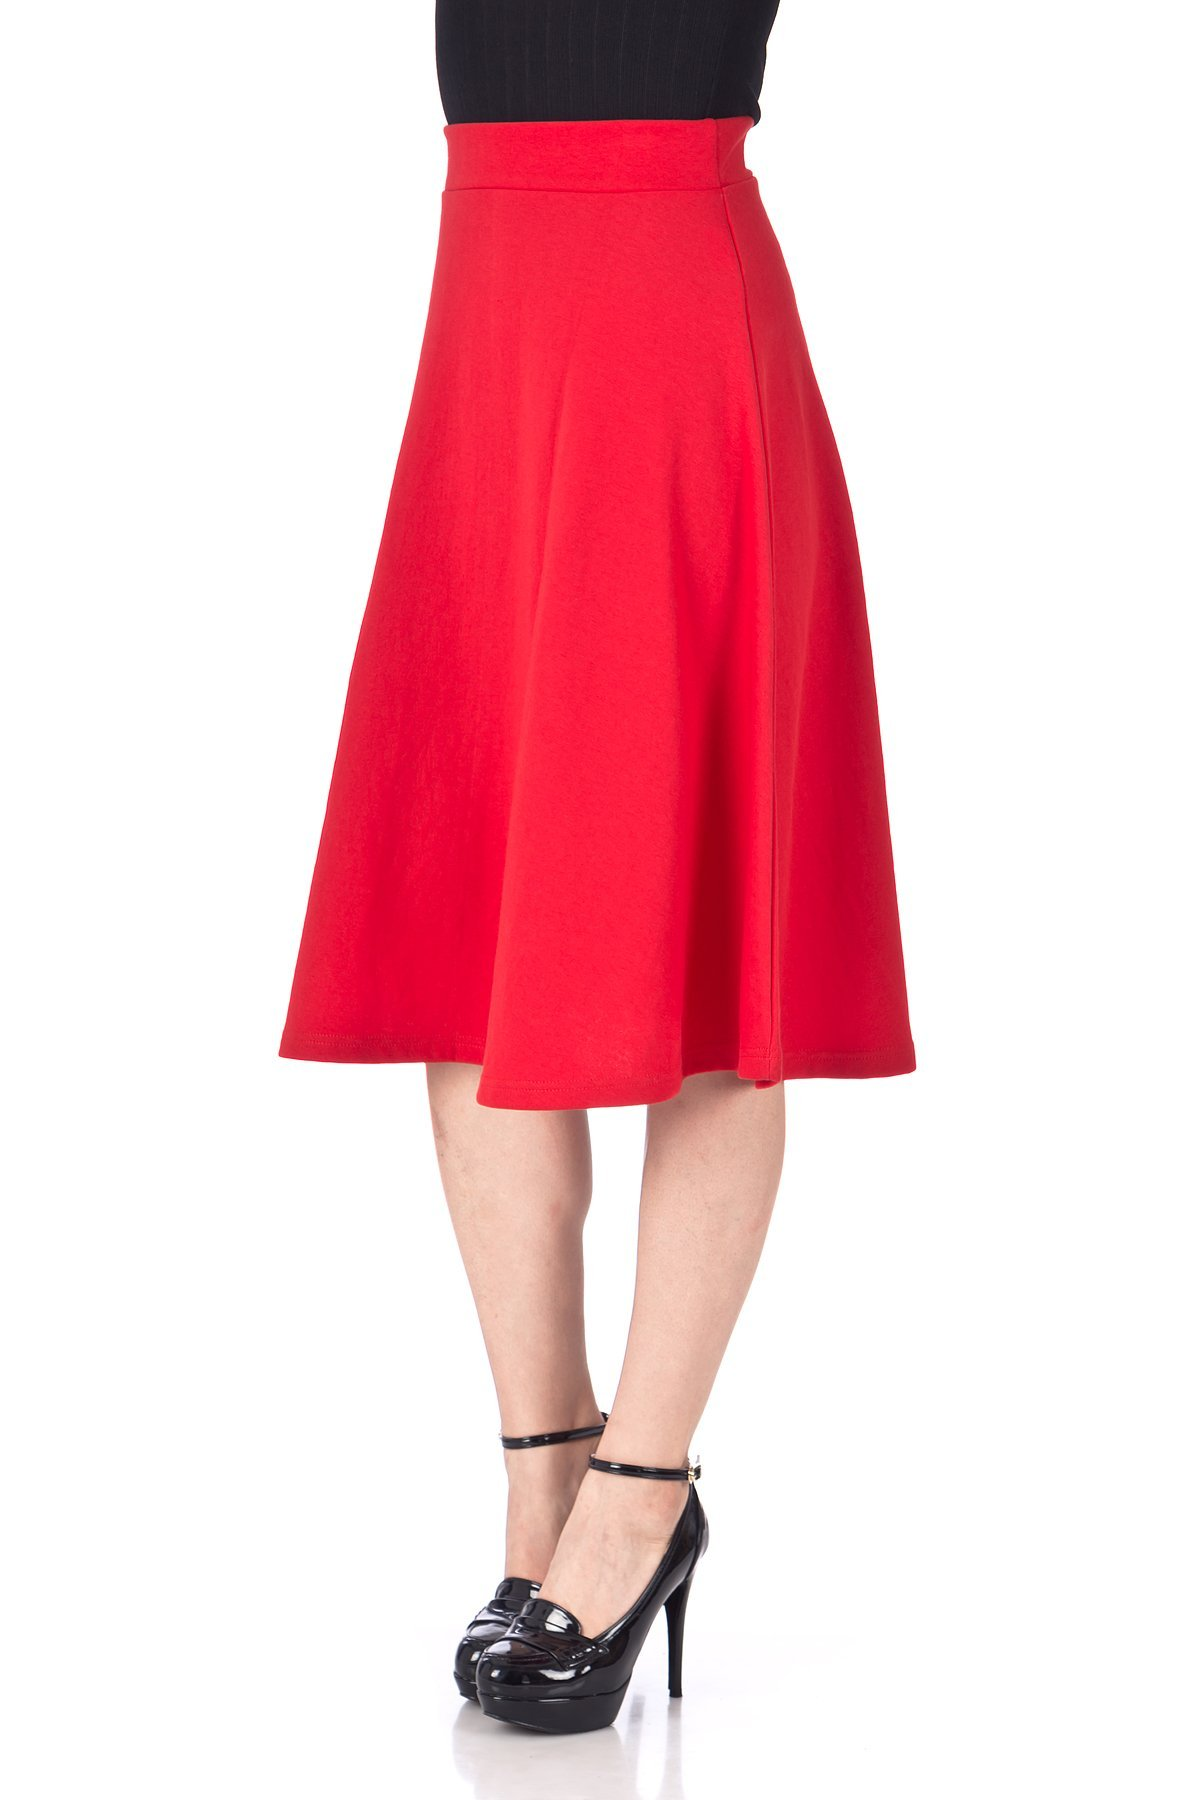 Everyday High Waist A Line Flared Skater Midi Skirt Red 06